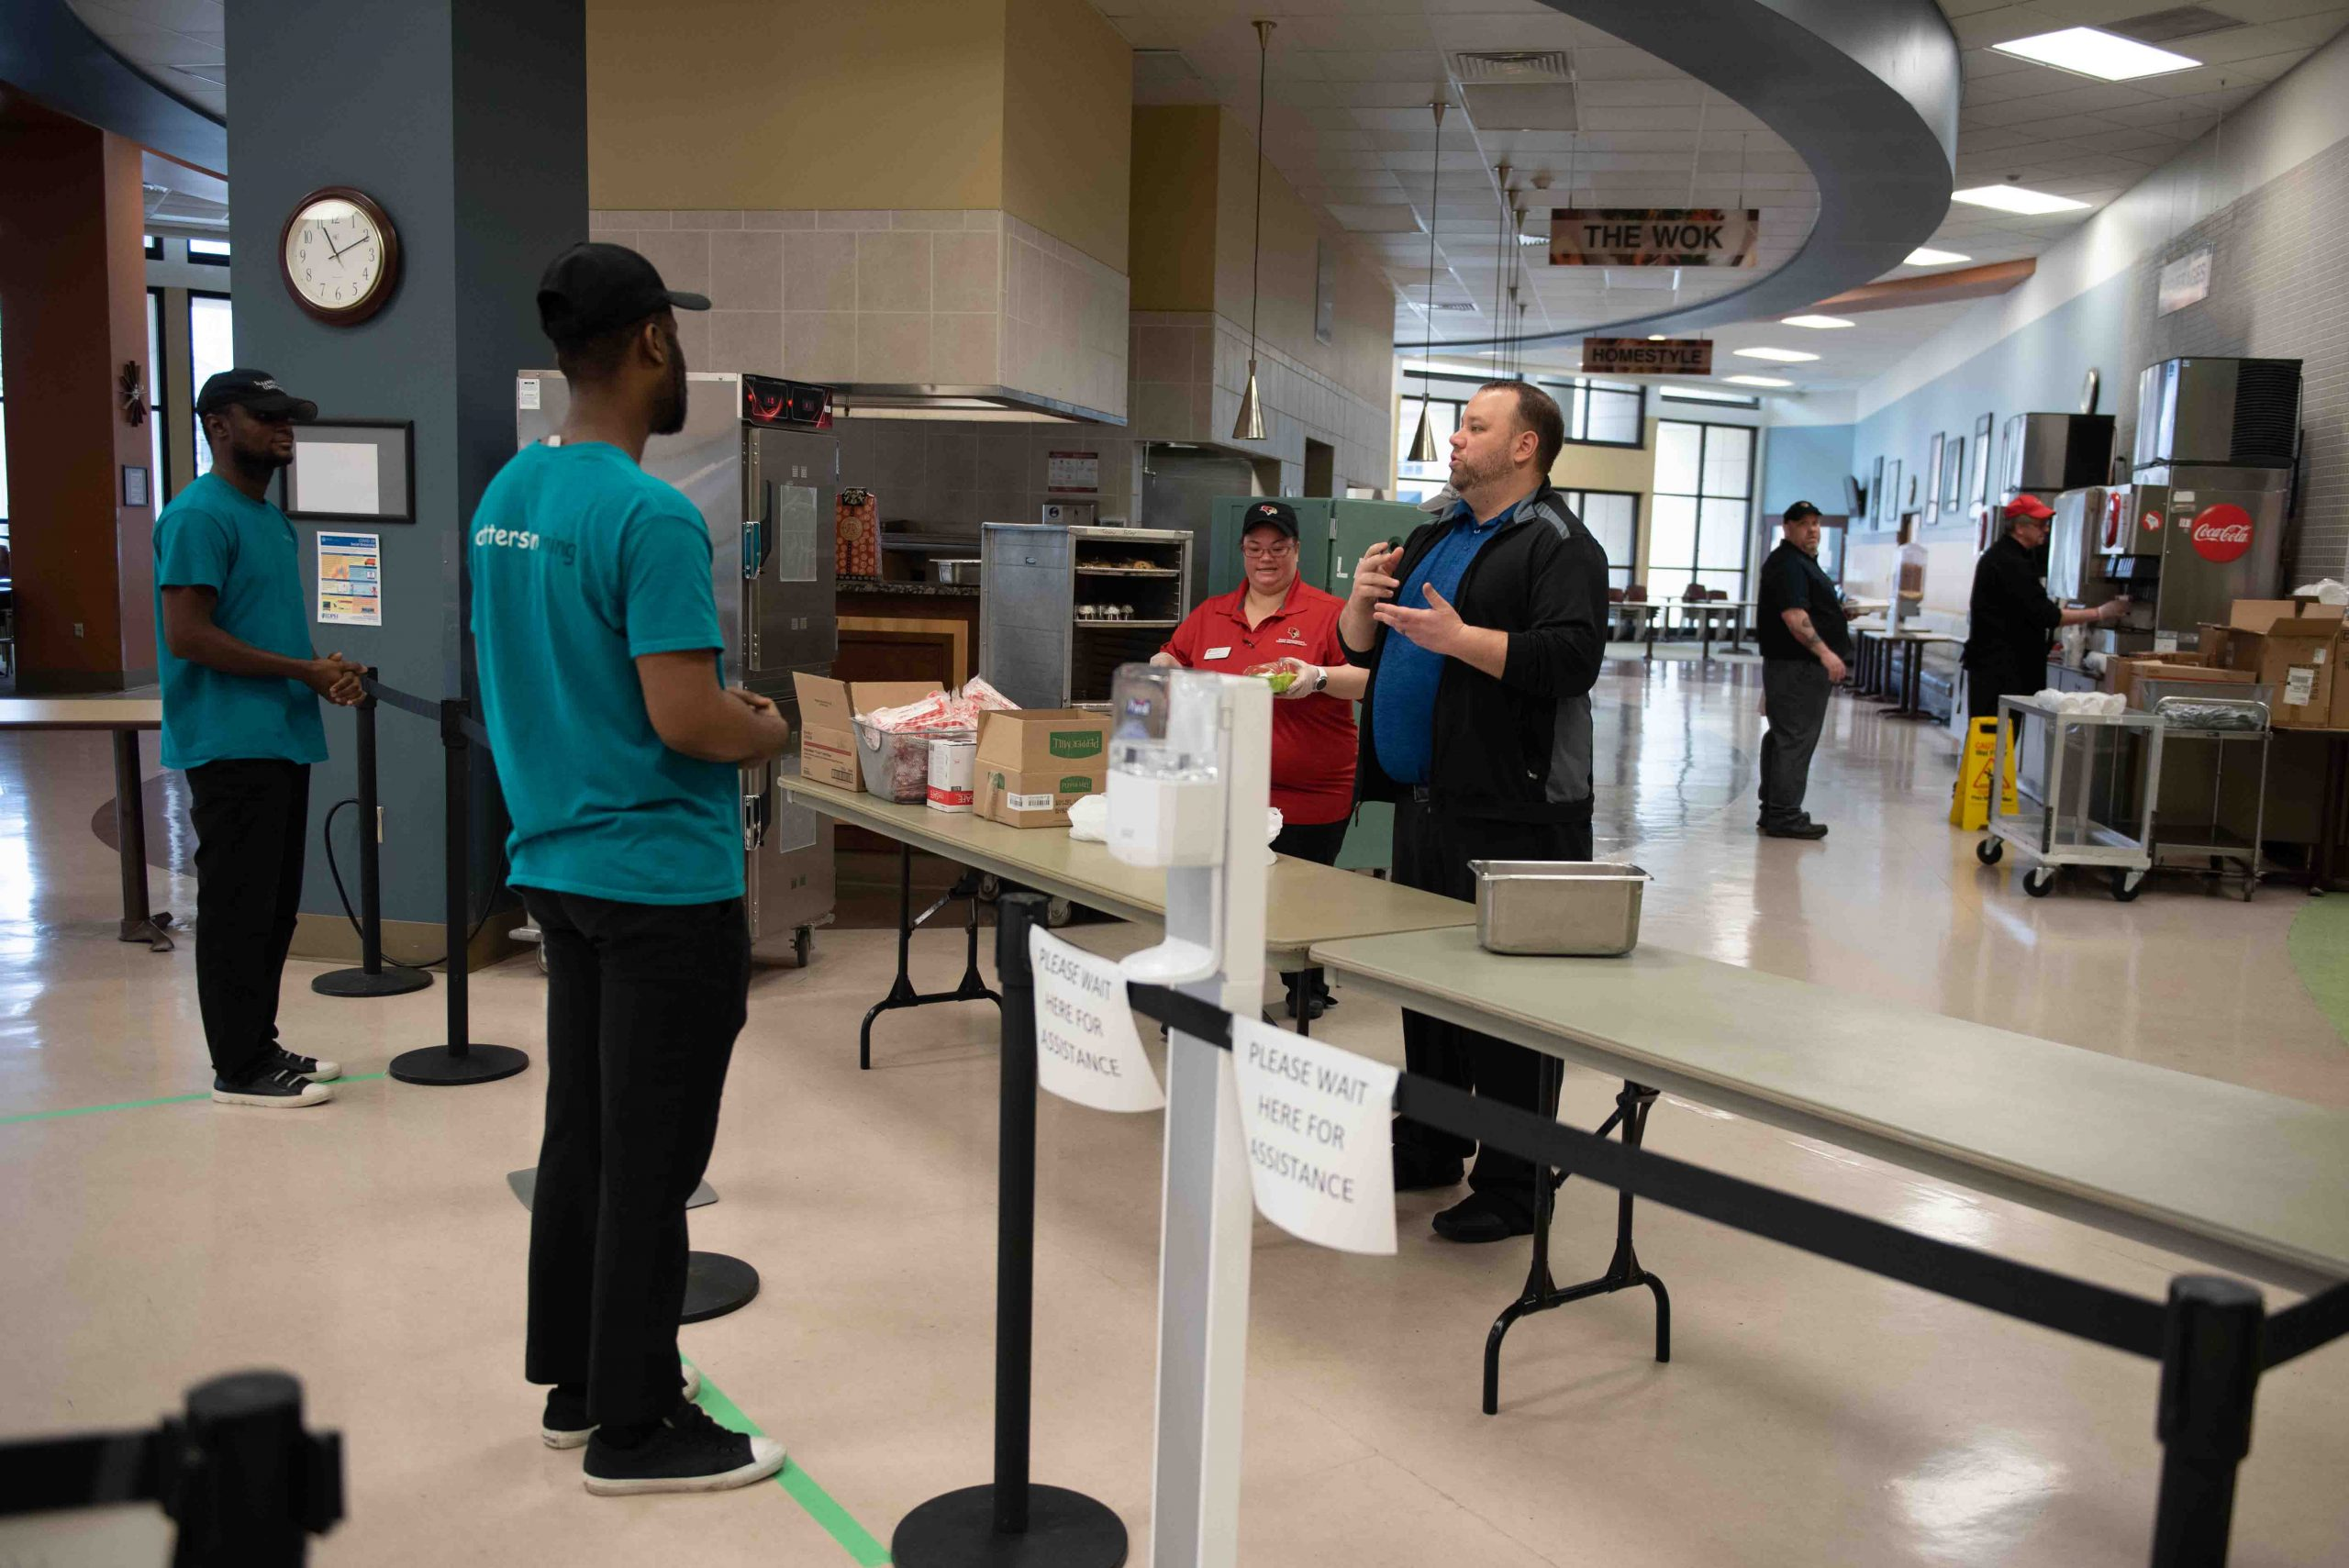 Watterson Dining Commons Assistant Director Jay Laesch informs students about the lunch options available and process for picking them up.